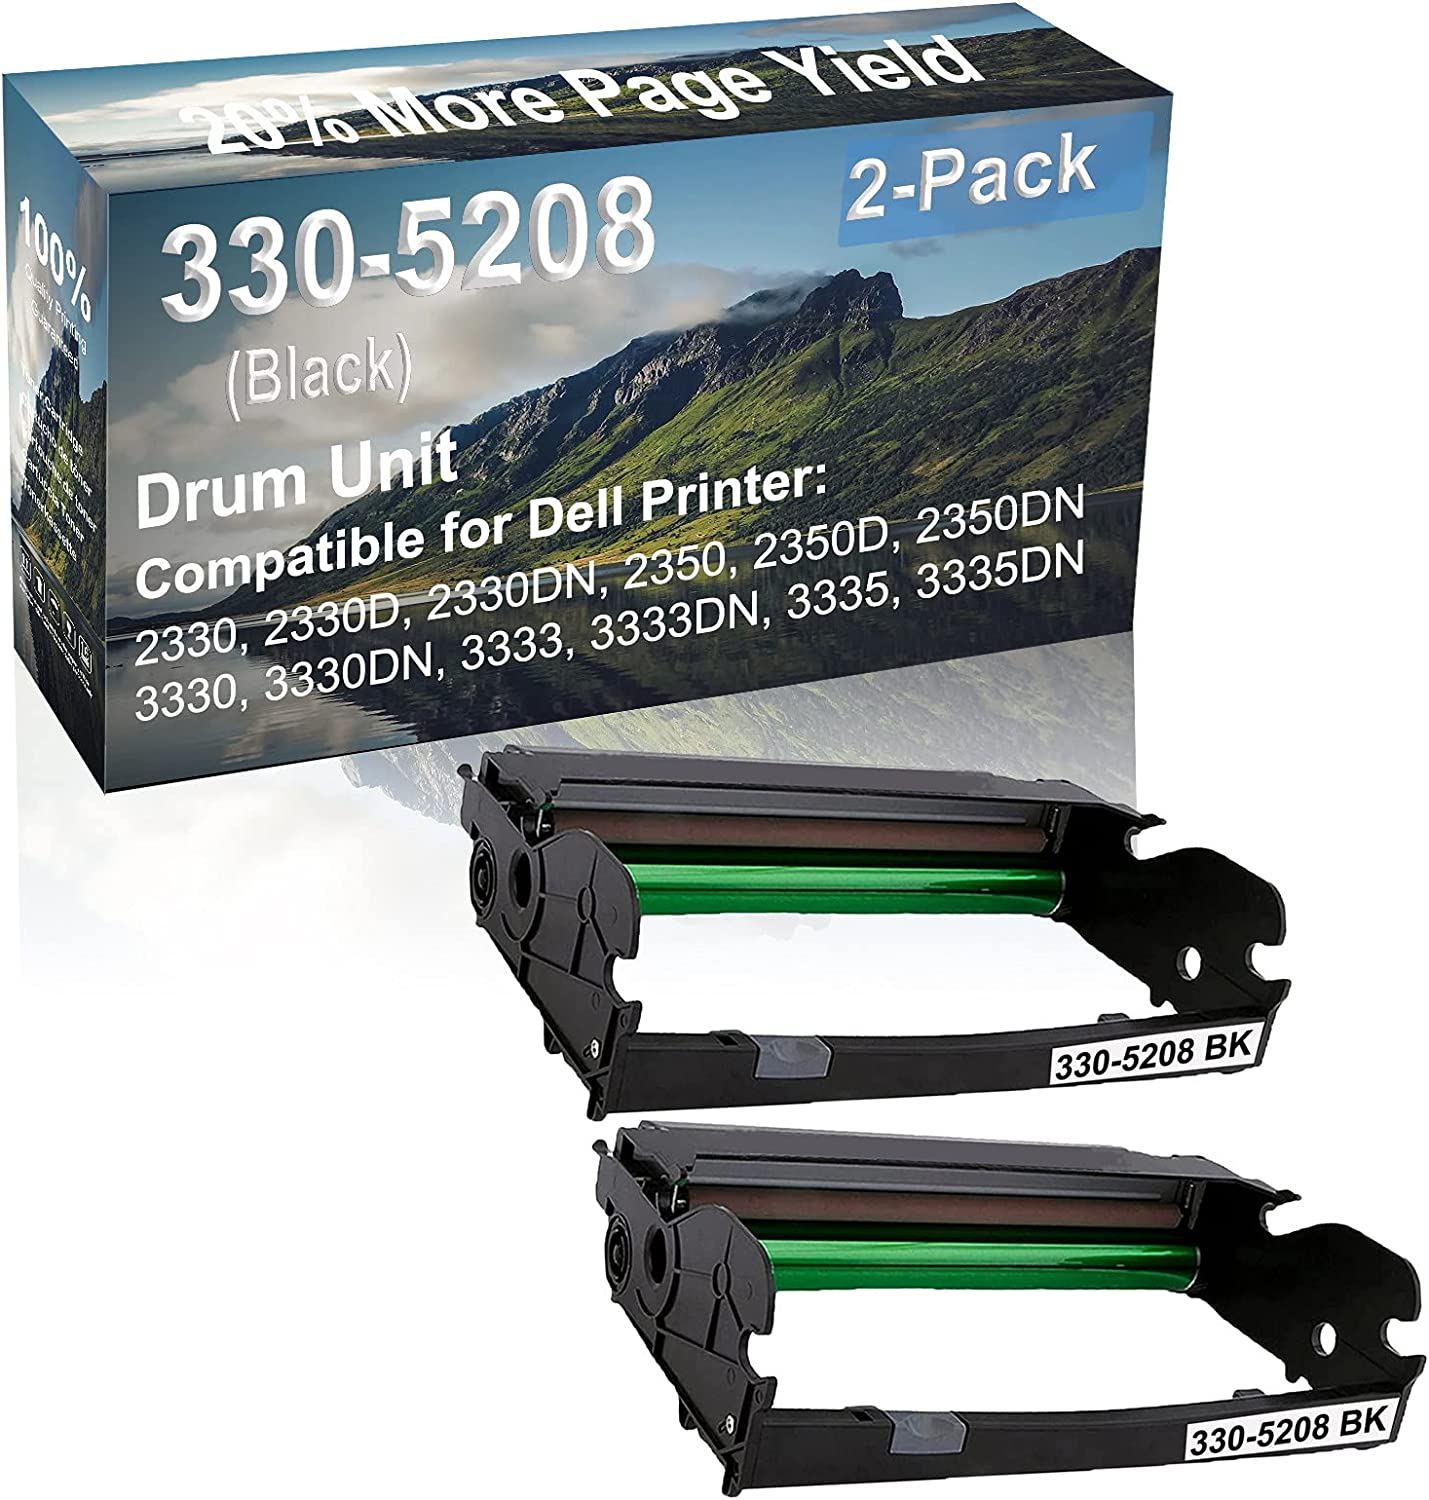 2-Pack Compatible 330-5208 Drum Kit use for Dell 2330, 2330D, 2330DN, 2350 Printer (Black)